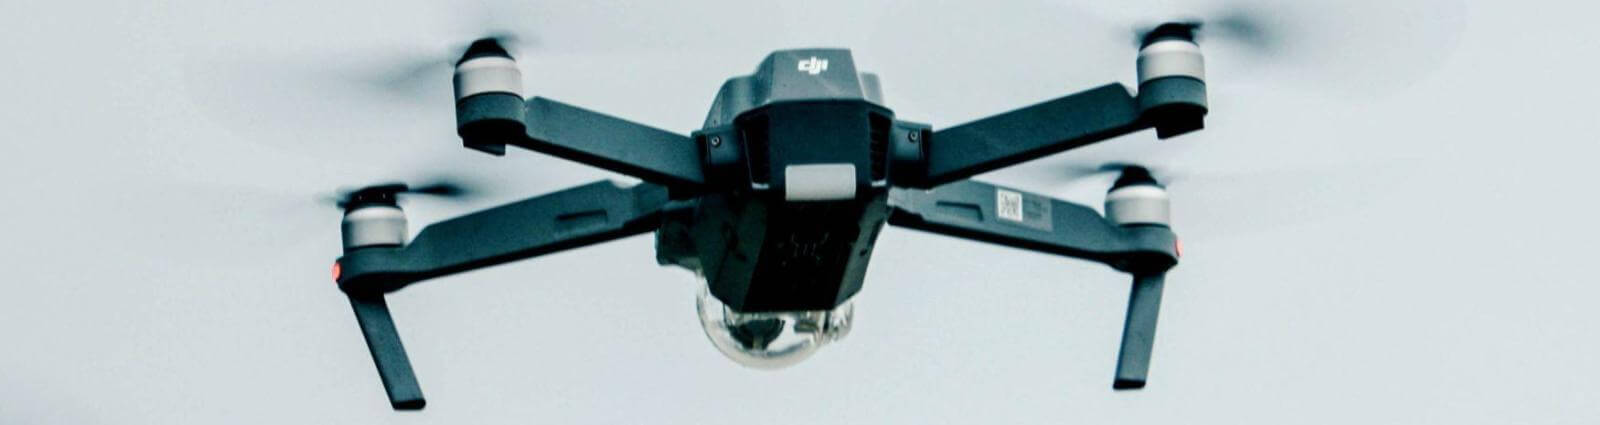 Drone Data Logger CAN Bus